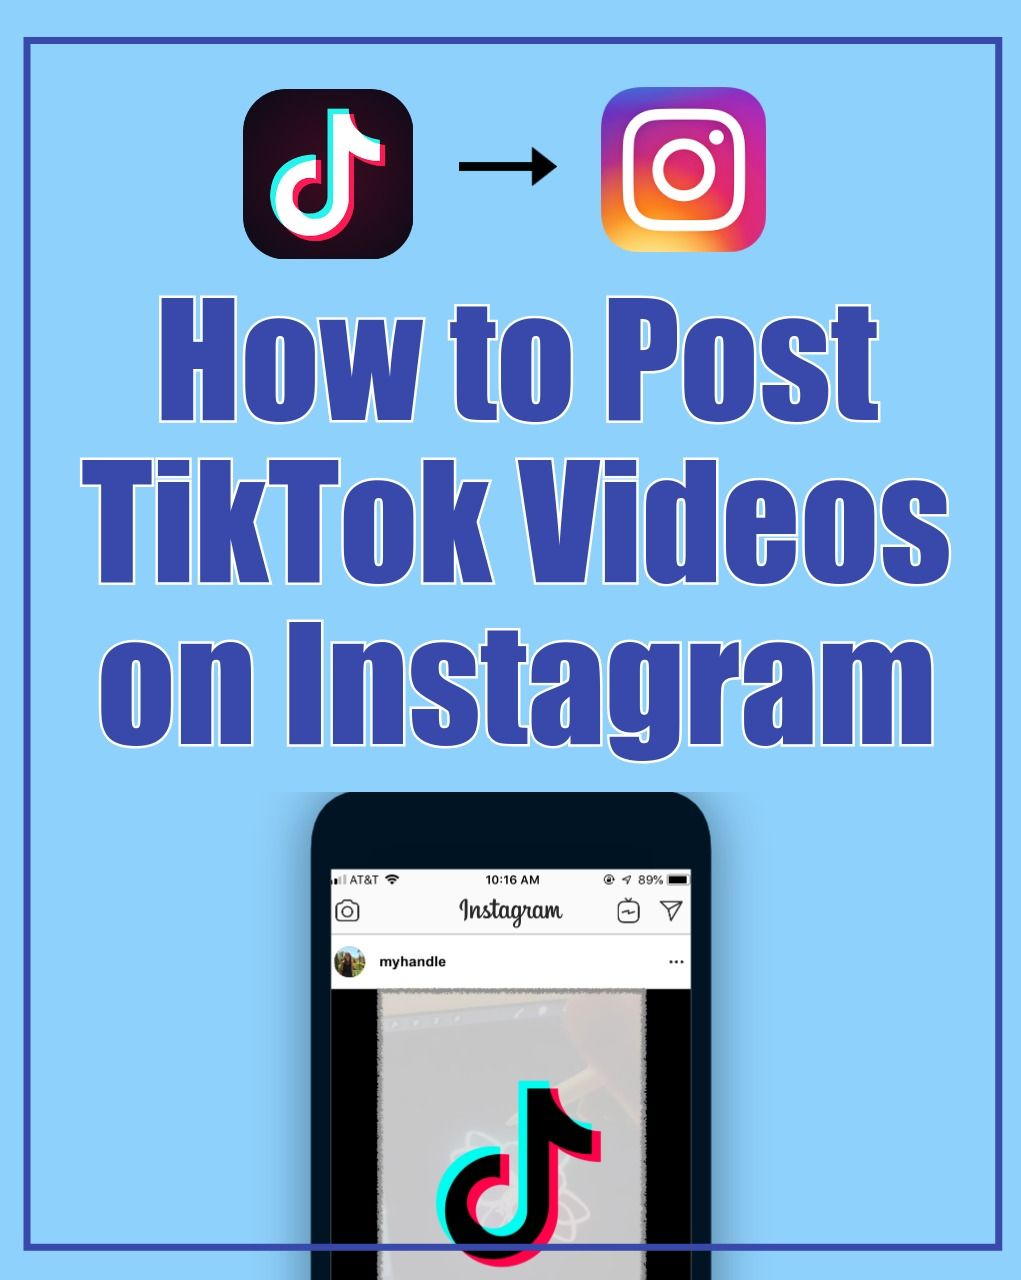 How to Post a TikTok Video on Instagram. In this tutorial